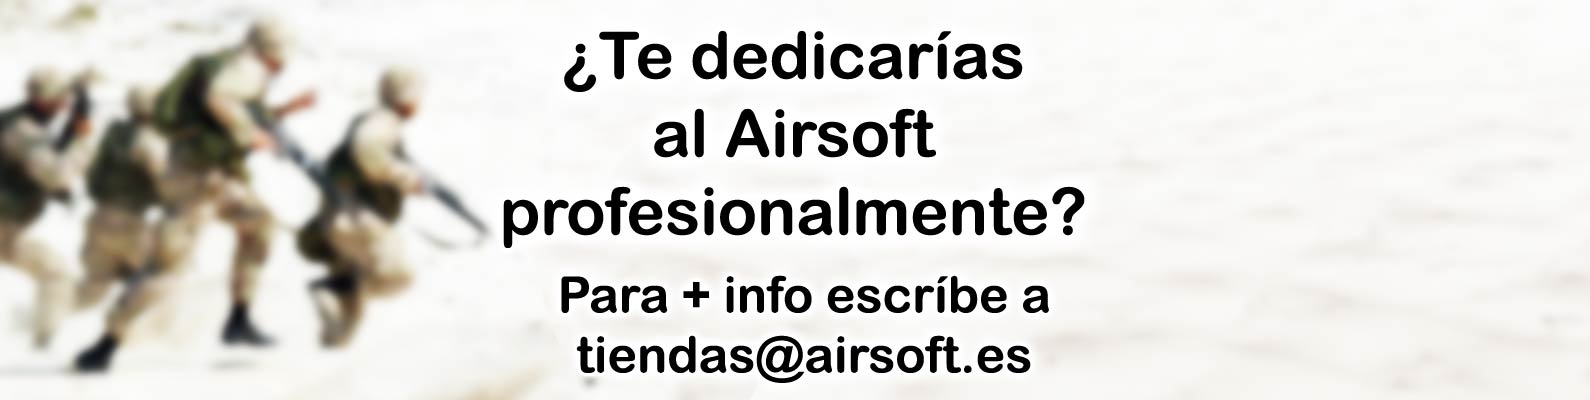 dedicatealairsoft